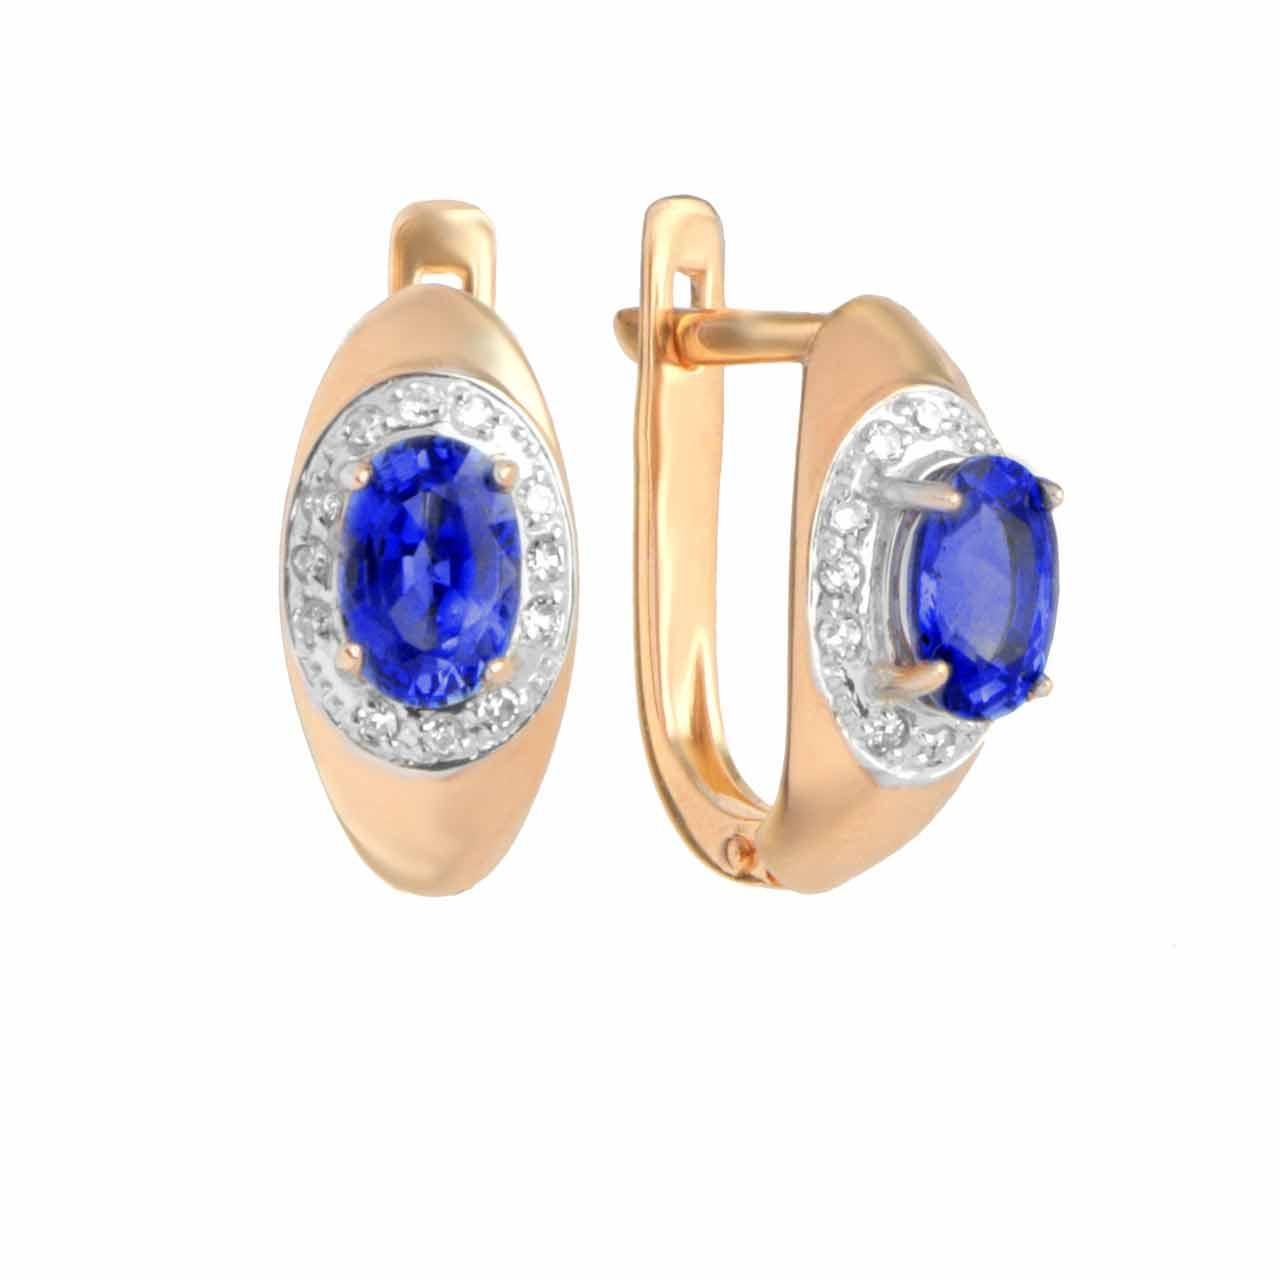 Cornflower Blue Sapphire Diamond Earrings